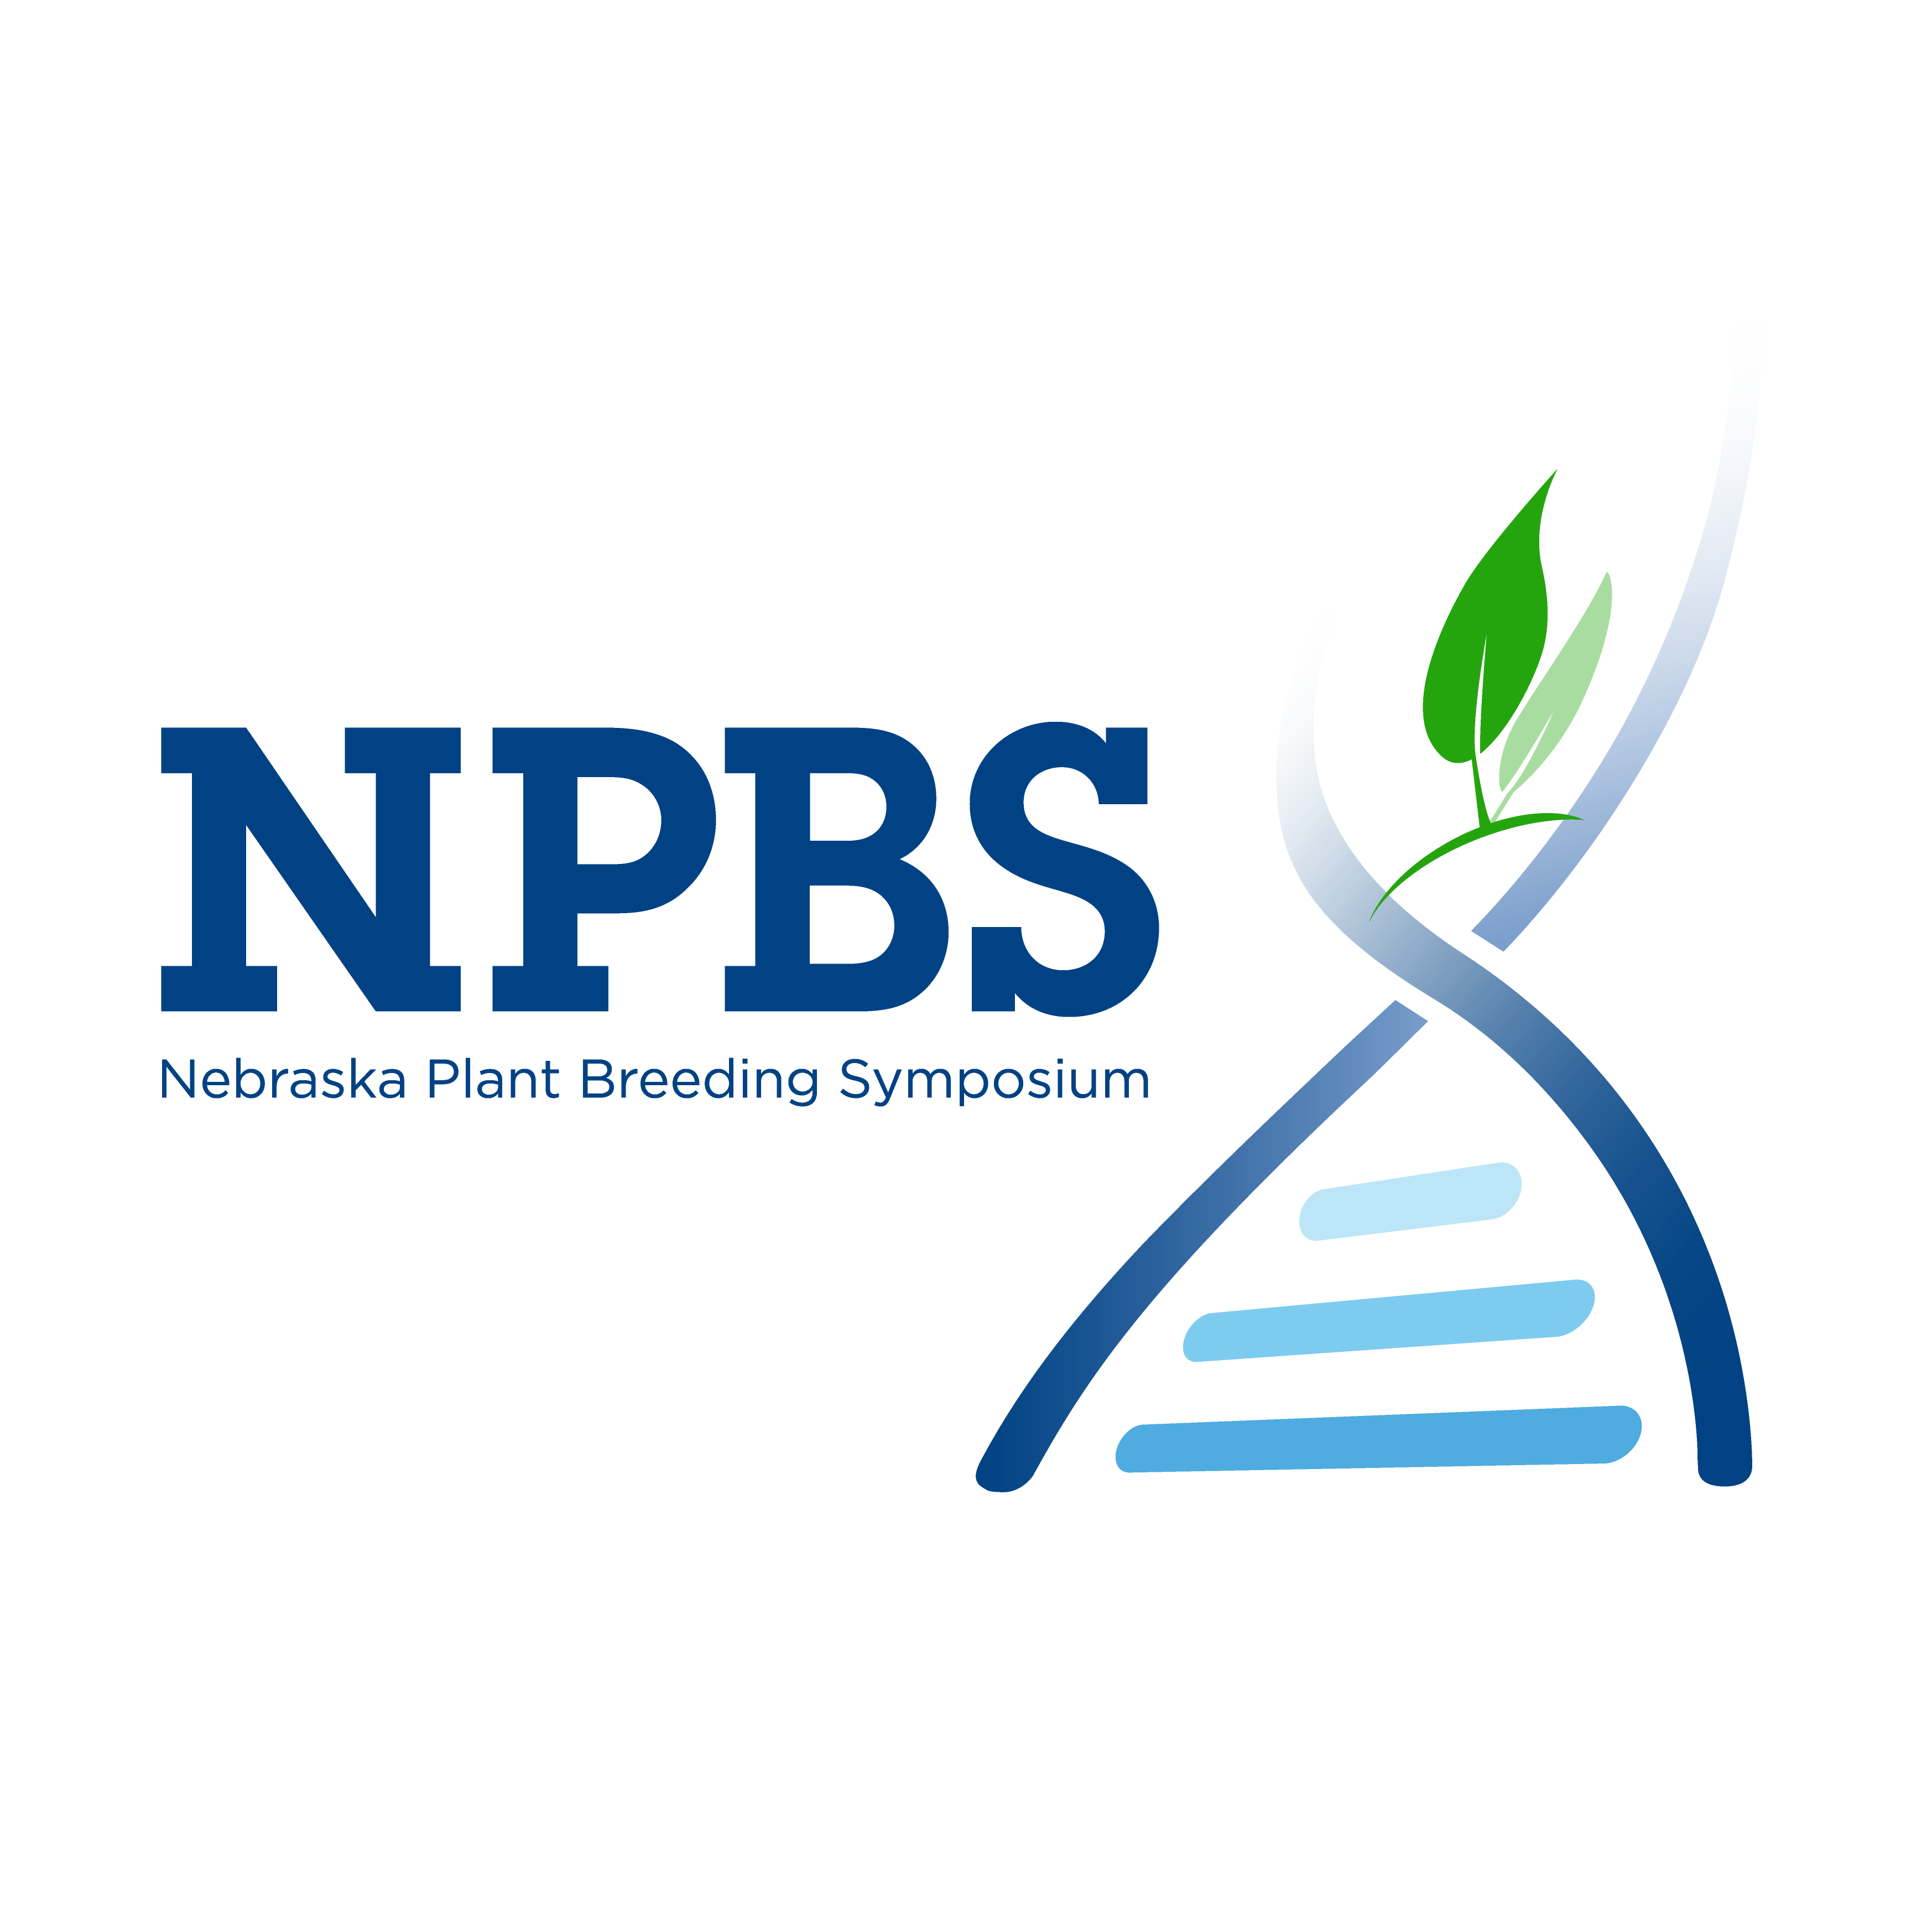 selection in plant breeding